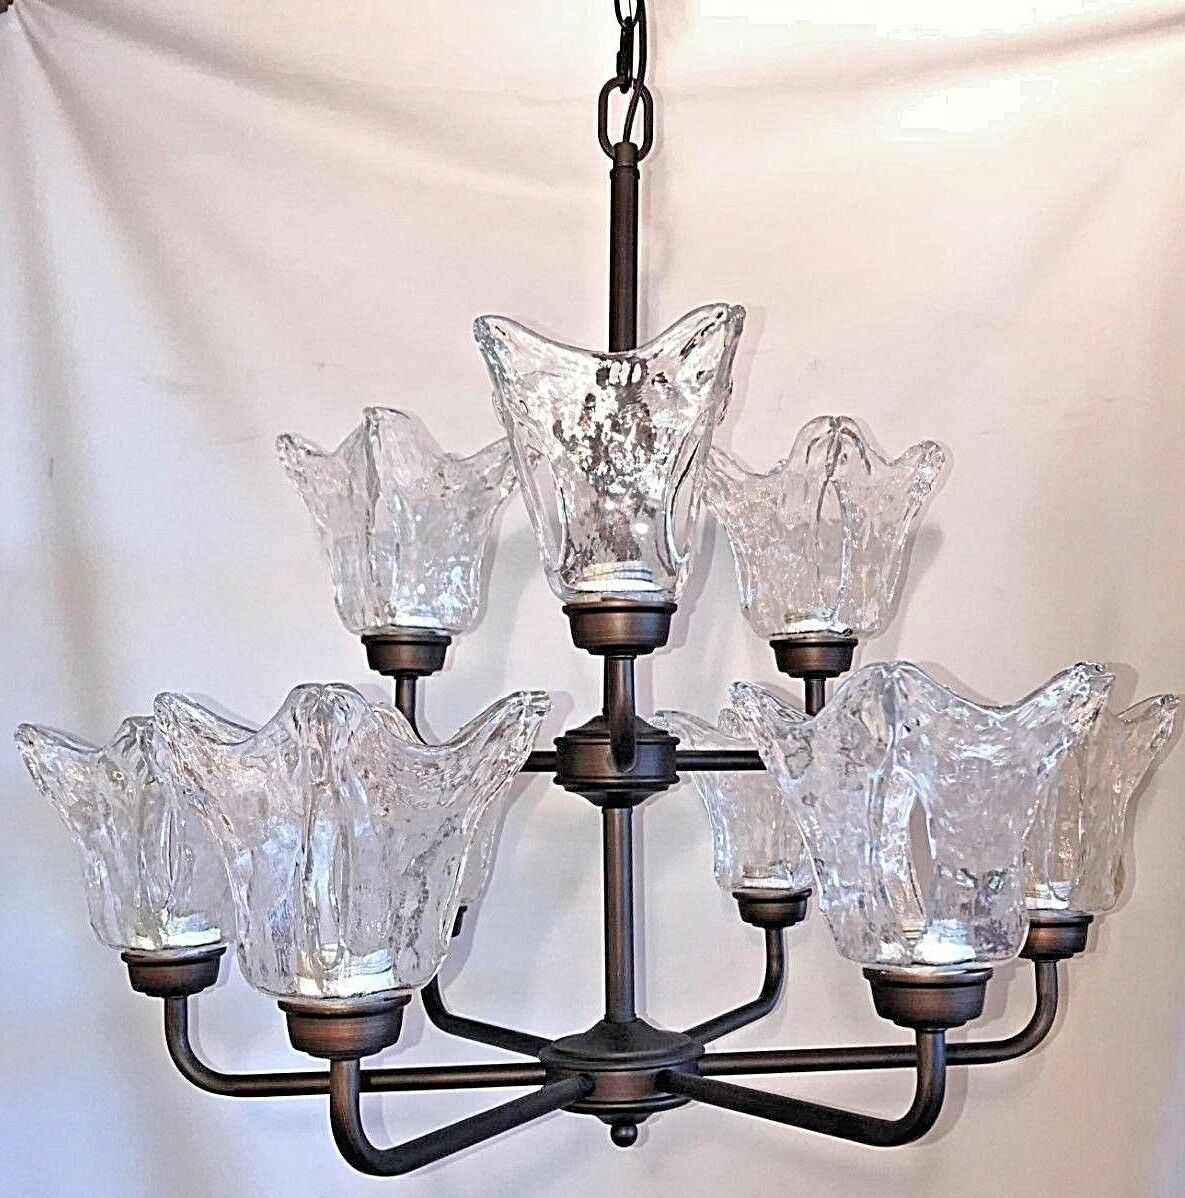 9 light chandelier rubbed bronze with clear hand blown glass